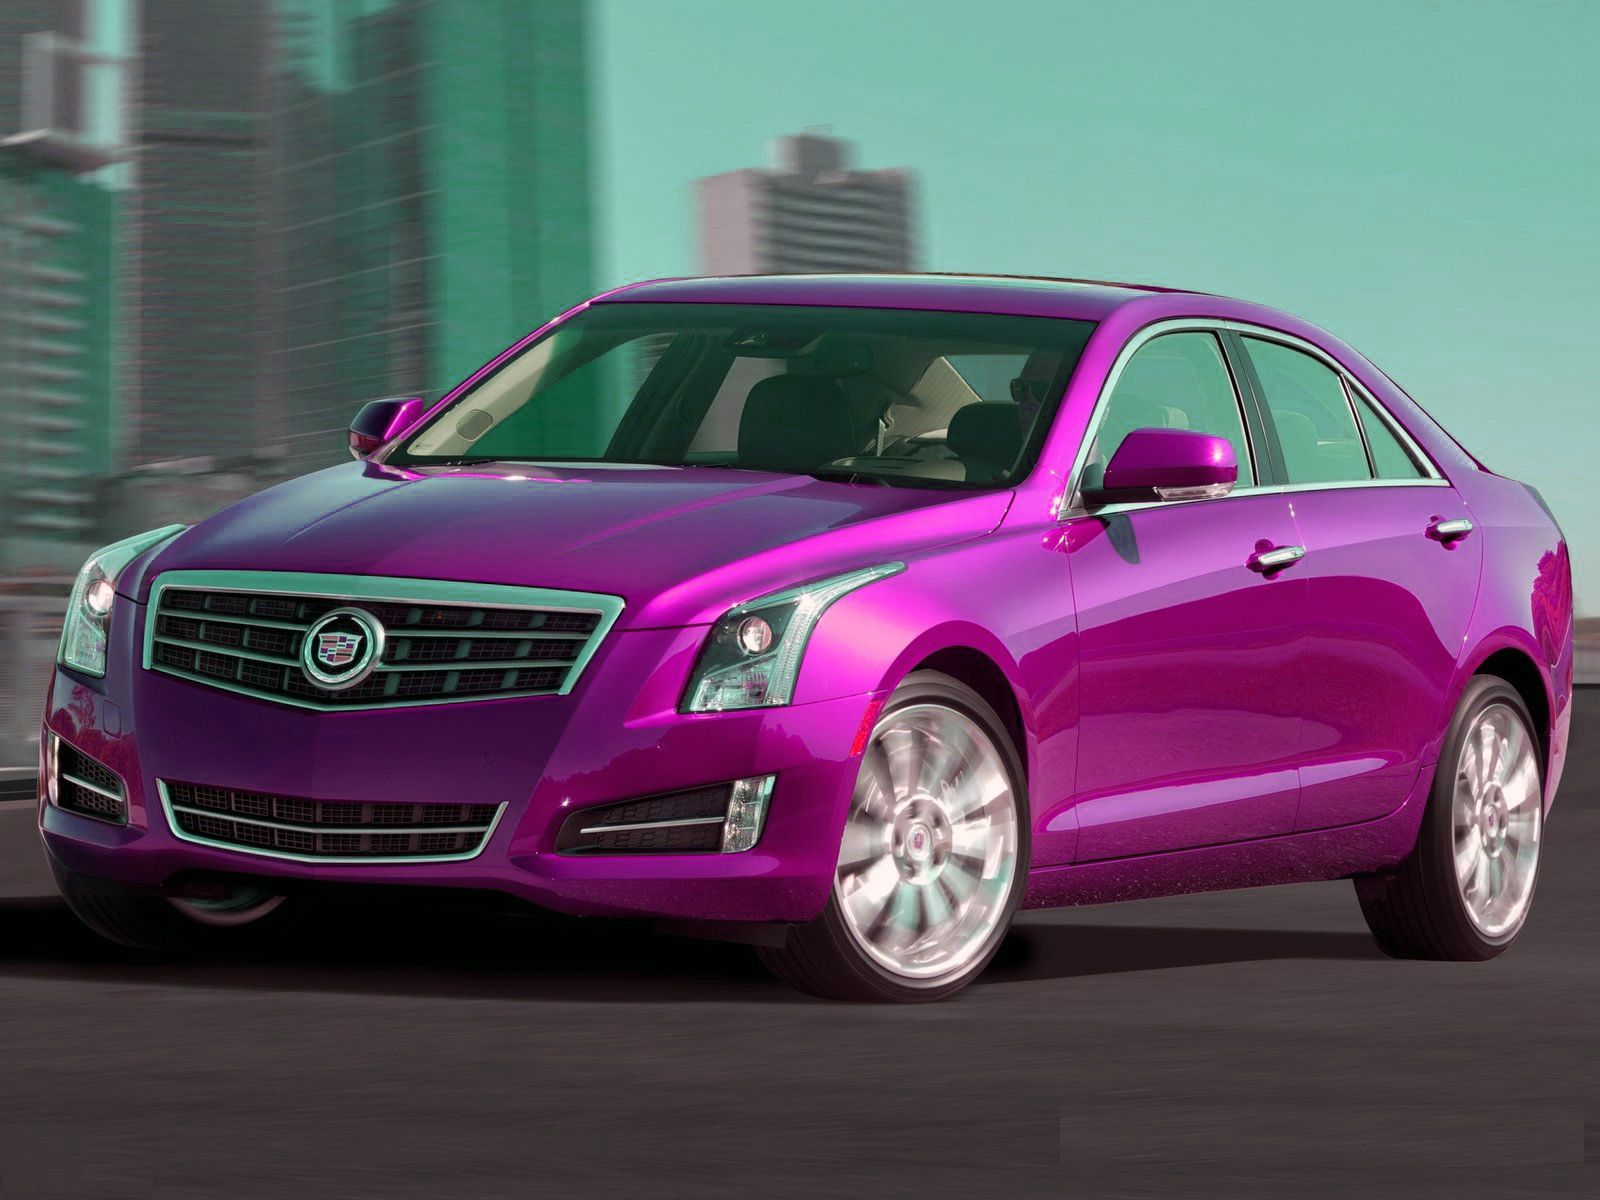 Edmunds has detailed price information for the 2013 cadillac ats sedan see our 2013 ats page for detailed gas mileage information insurance estimates